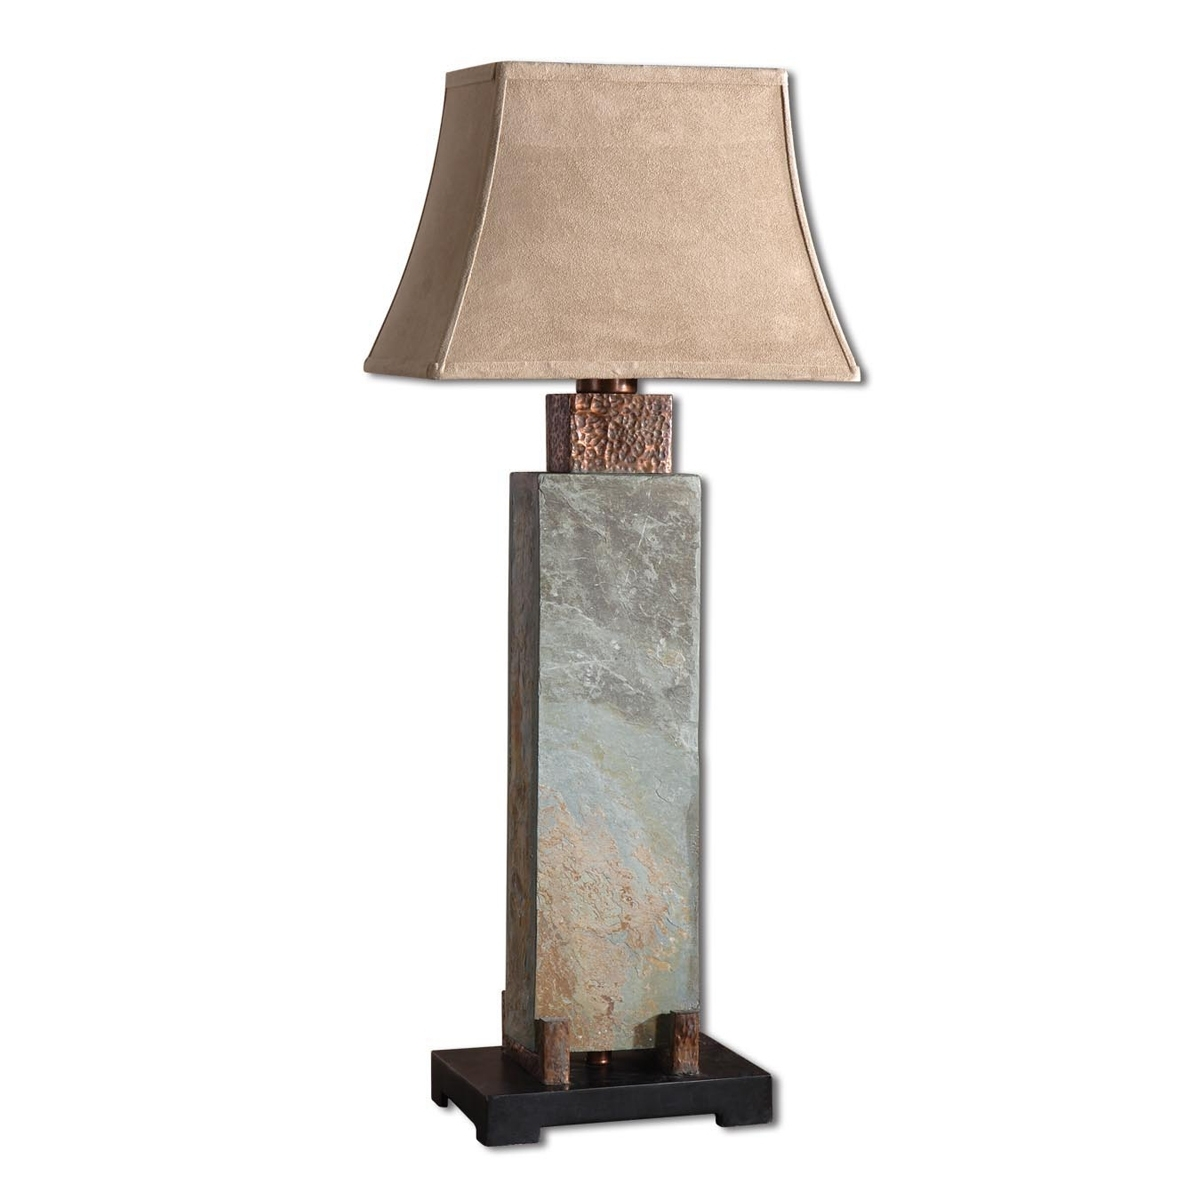 Tall Table Lamps For Living Room With Most Popular Creative Decoration Rustic Table Lamps For Living Room Rustic Table (View 16 of 20)